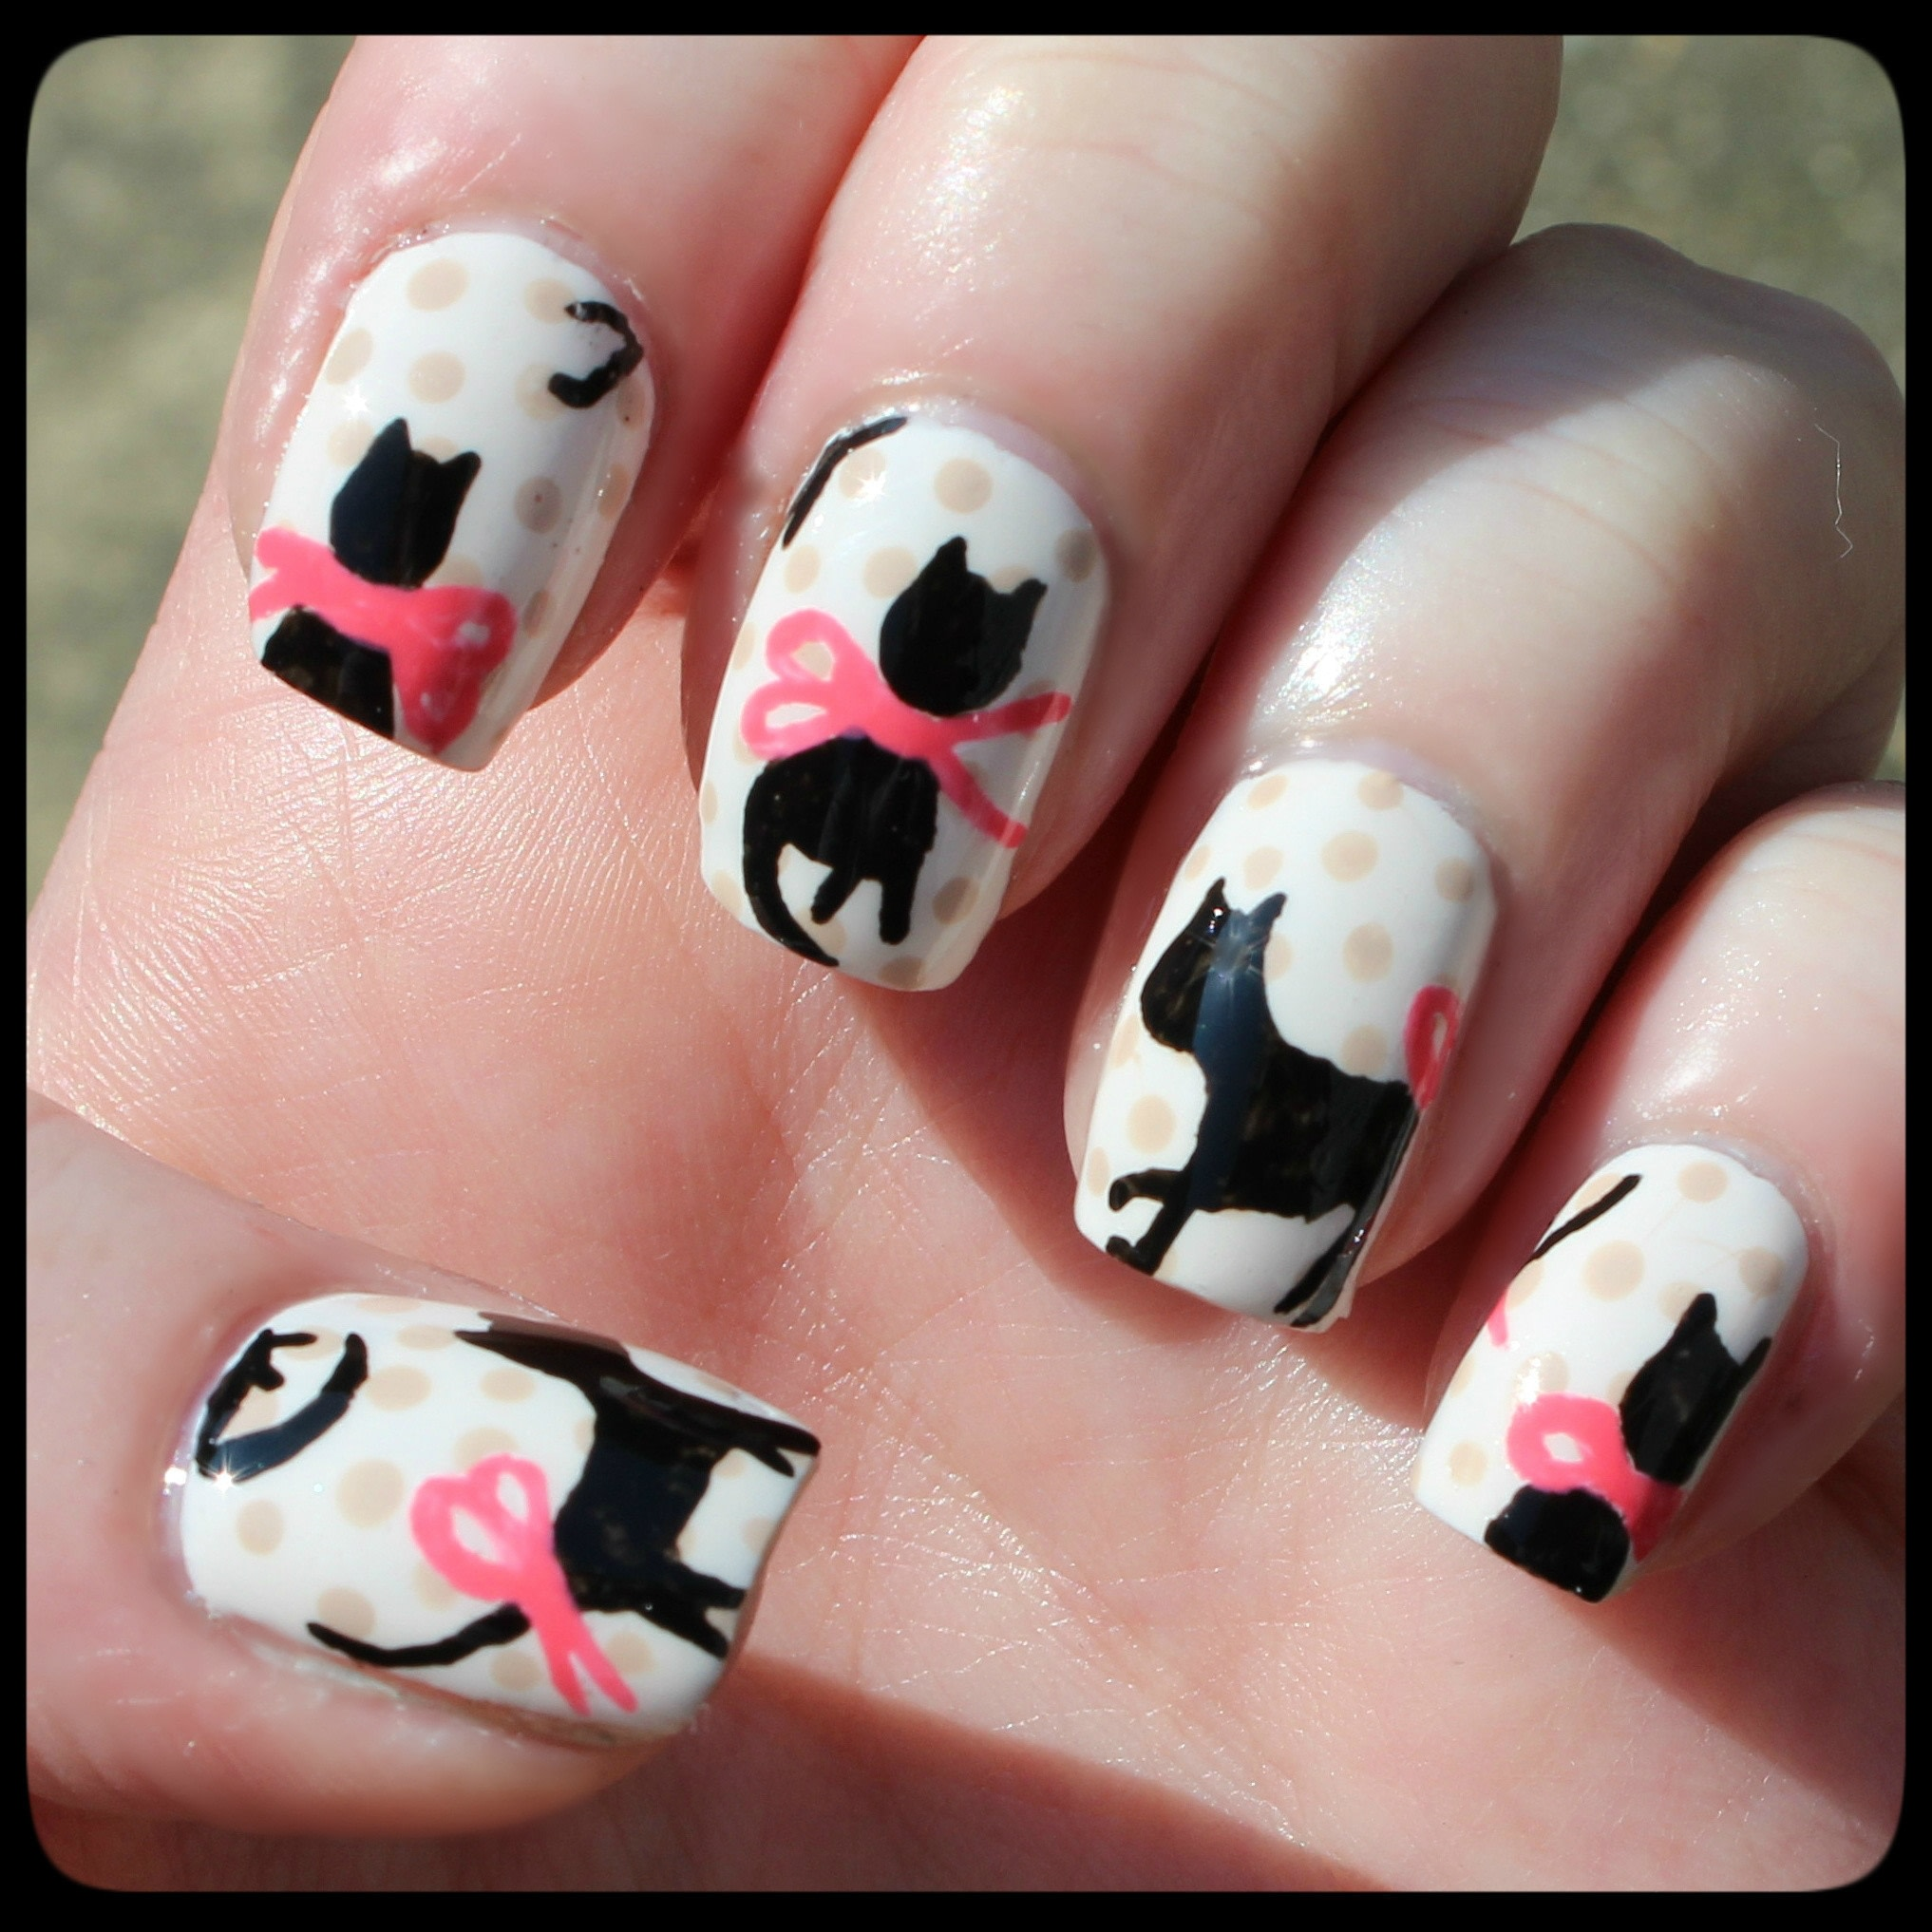 Cat Blouse Nail Art · How To Paint An Animal Nail · Beauty on Cut ...